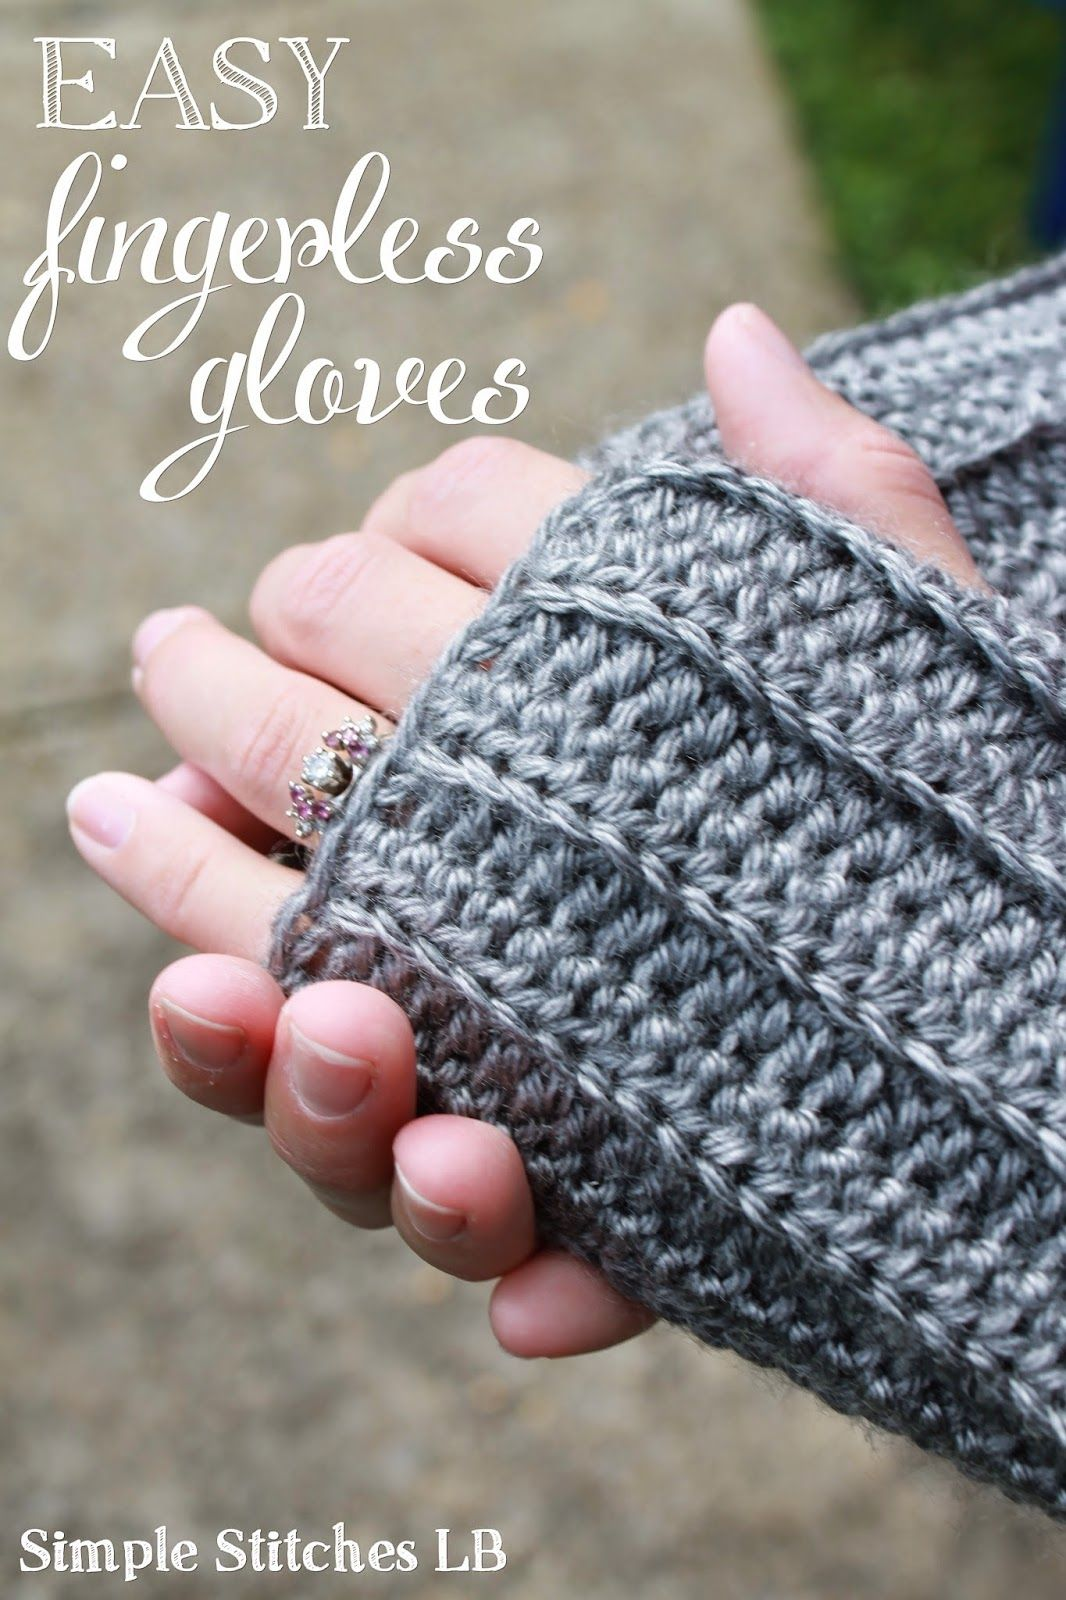 Simple Stitches: Free Pattern: Easy Ribbed Fingerless Gloves ...